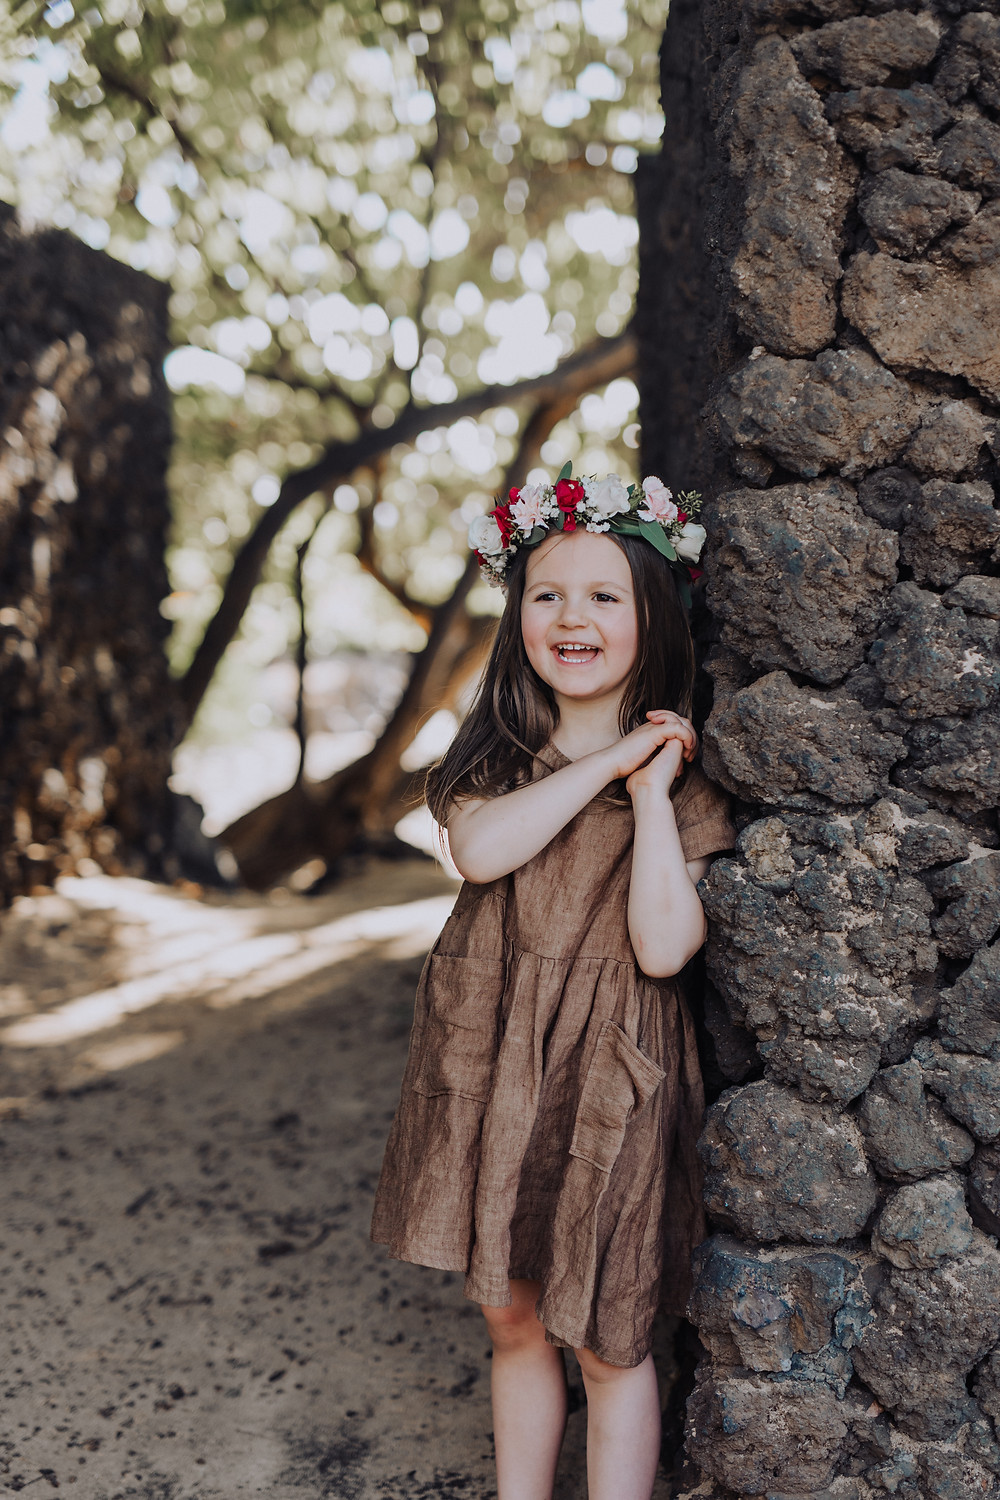 A little girl stands against a rock wall smiling happily.